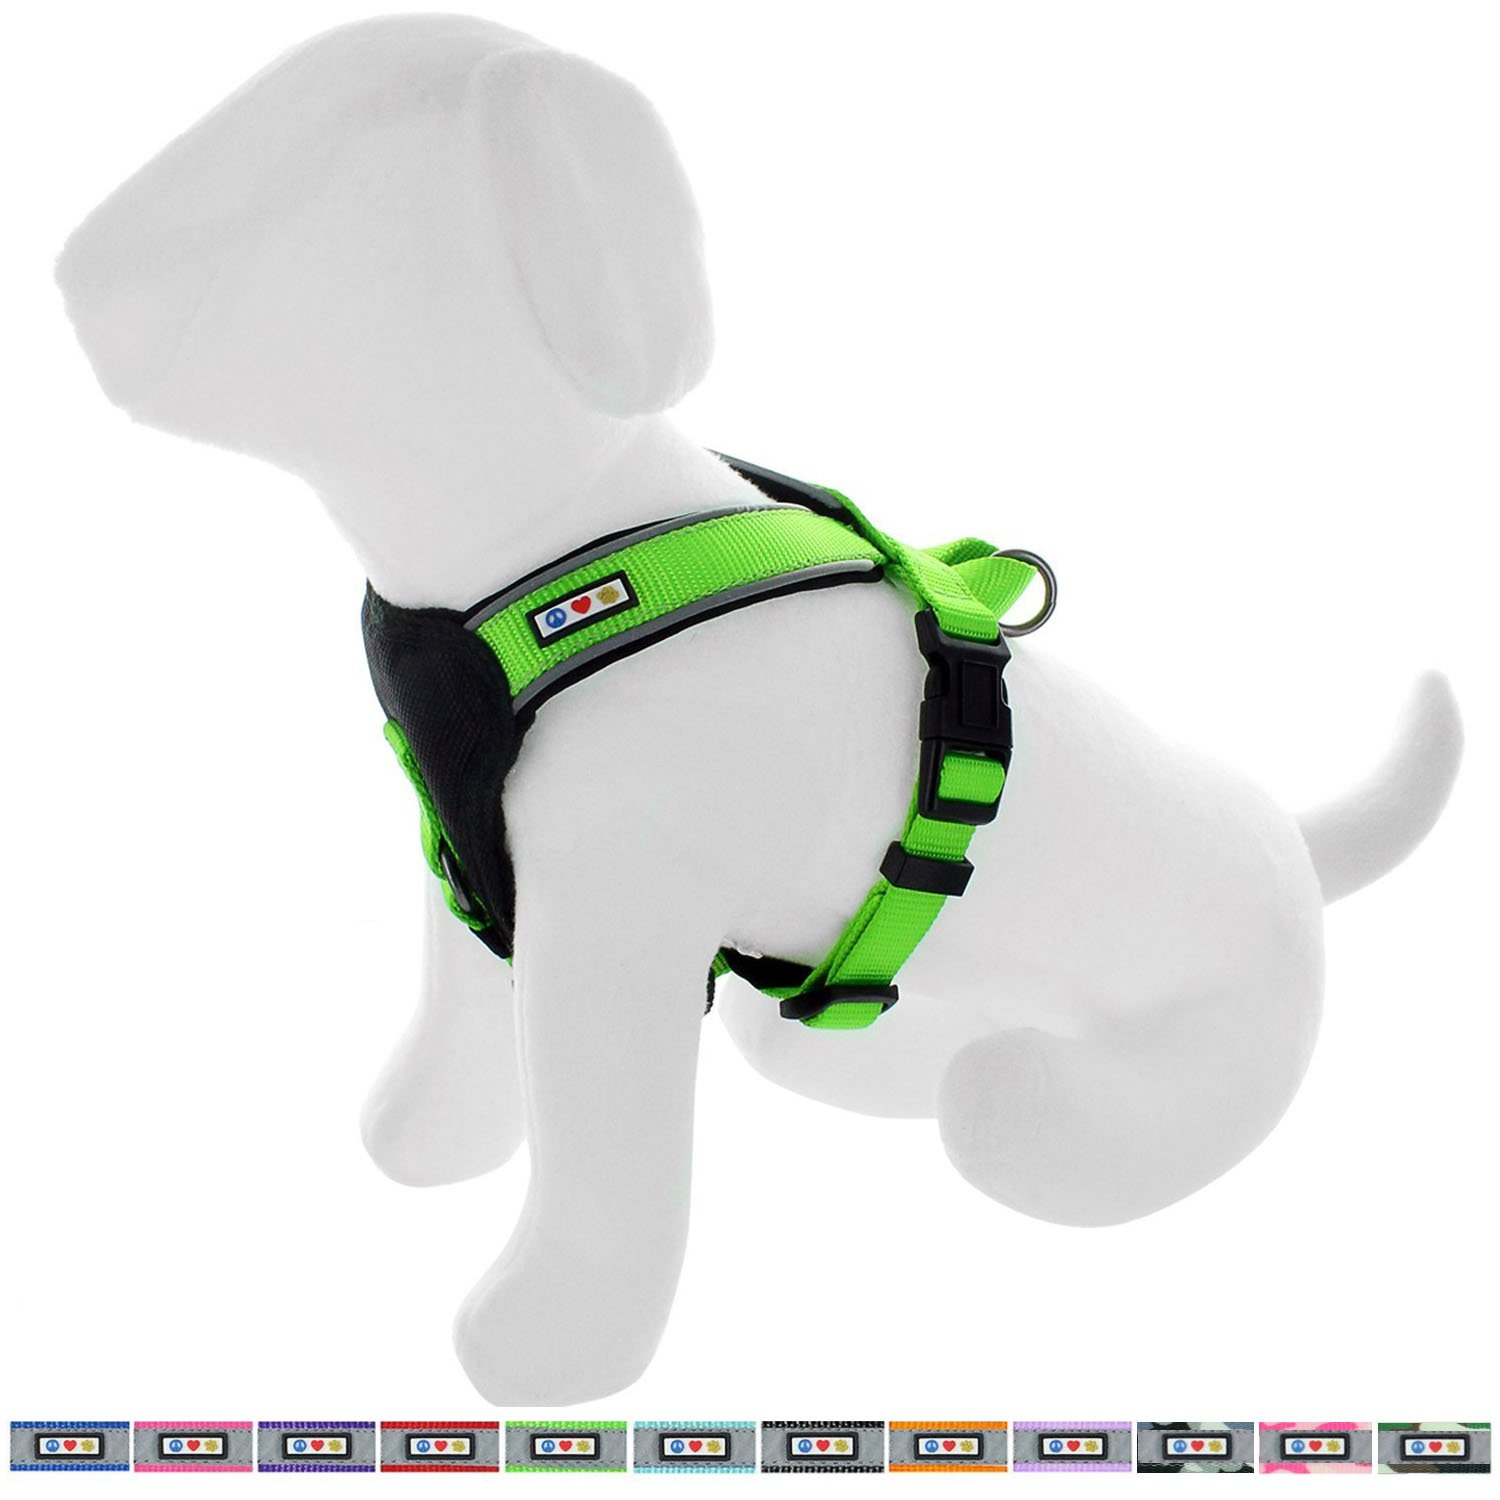 Pawtitas Pet Training Soft Adjustable Reflective Oxford Padded Puppy/Dog Harness, Step in or Vest Harness, Comfort Control, Training Walking - No More Pulling, Tugging, Extra Small Green